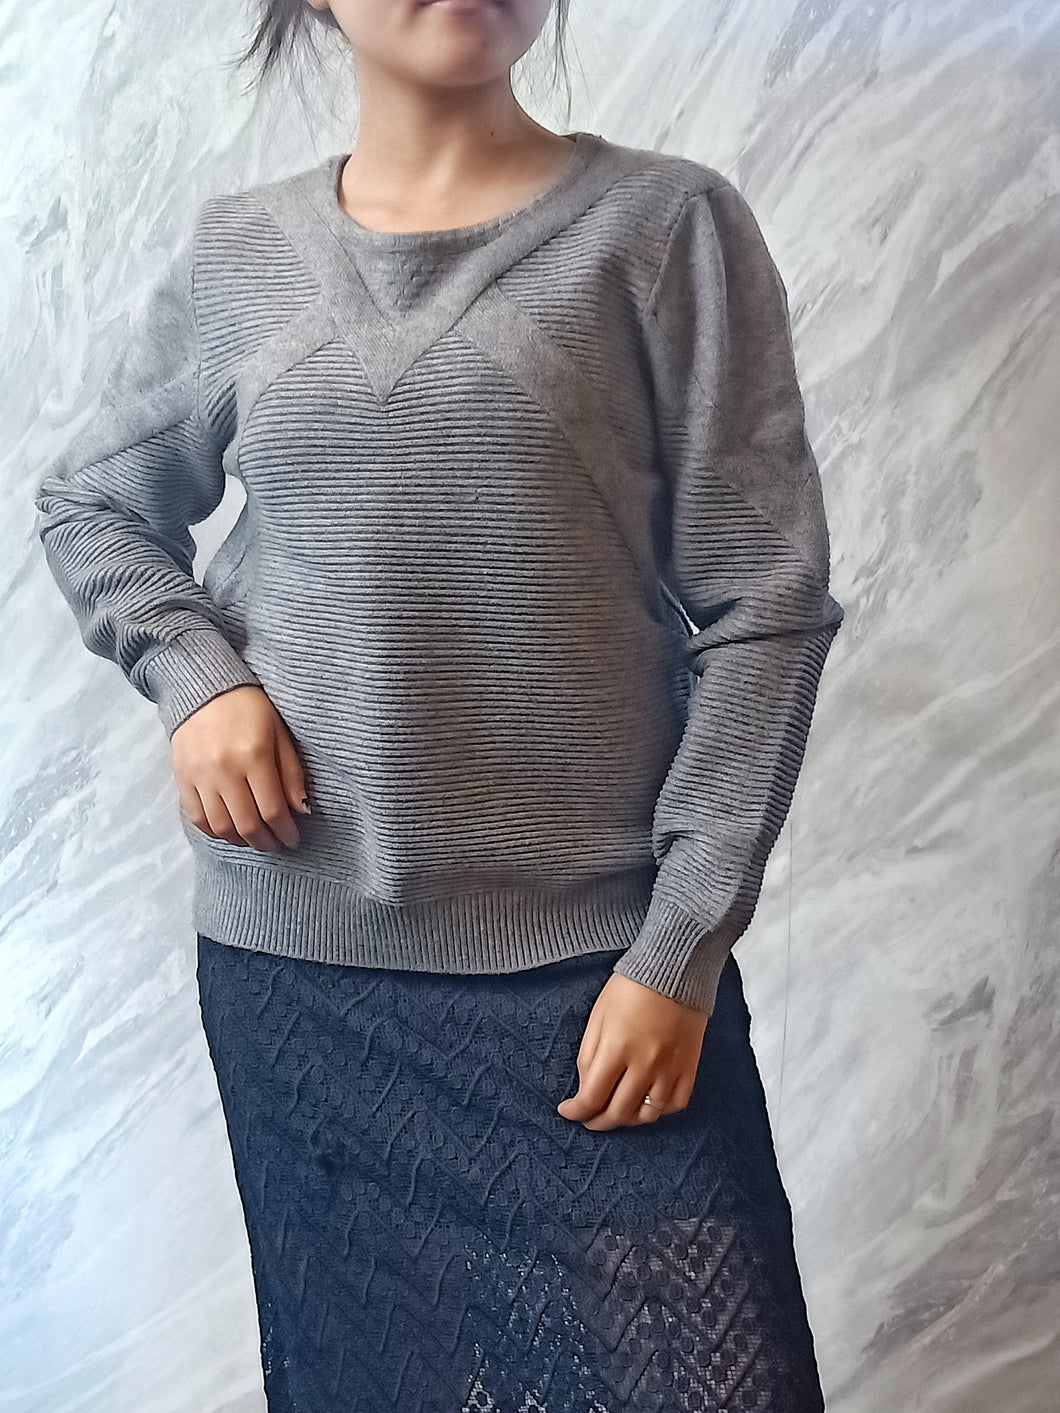 ELE-0308 Pull over top grey